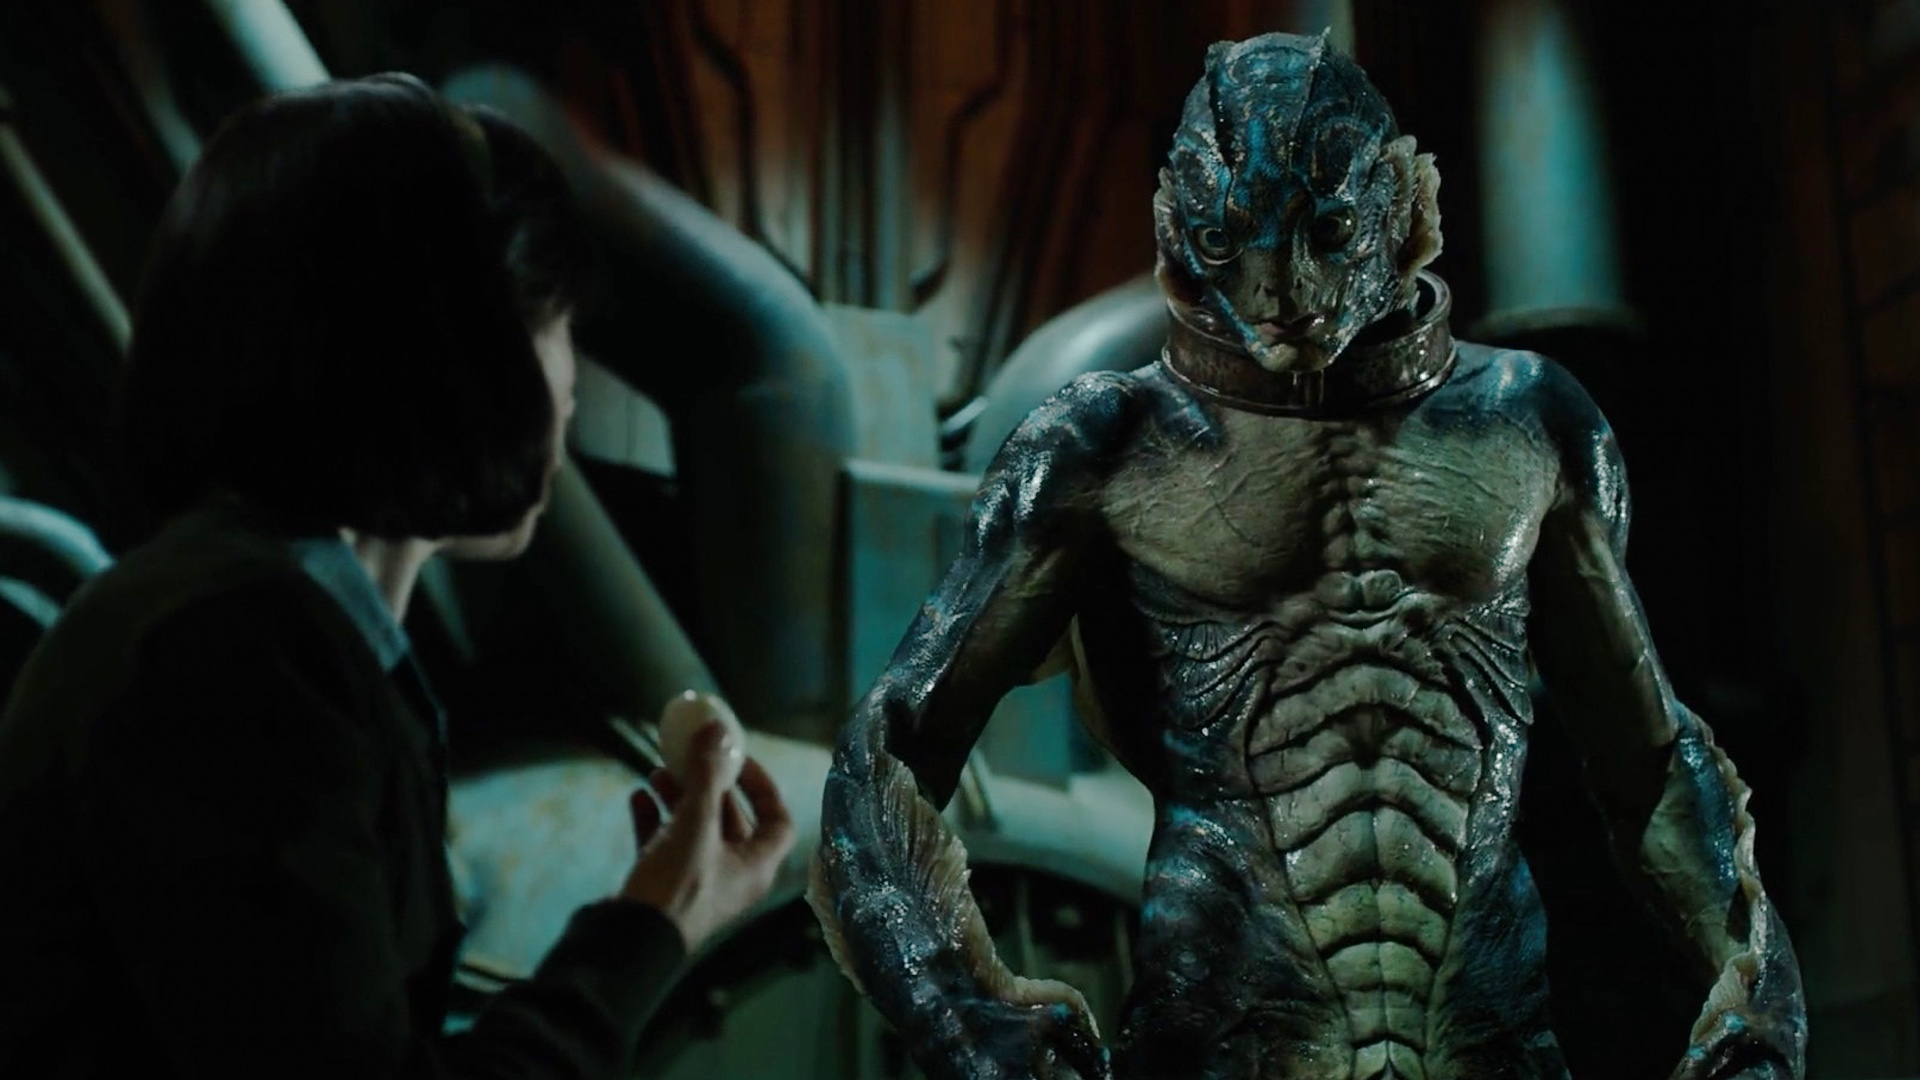 Guillermo Del Toro Wins Best Director And The Shape Of Water Wins